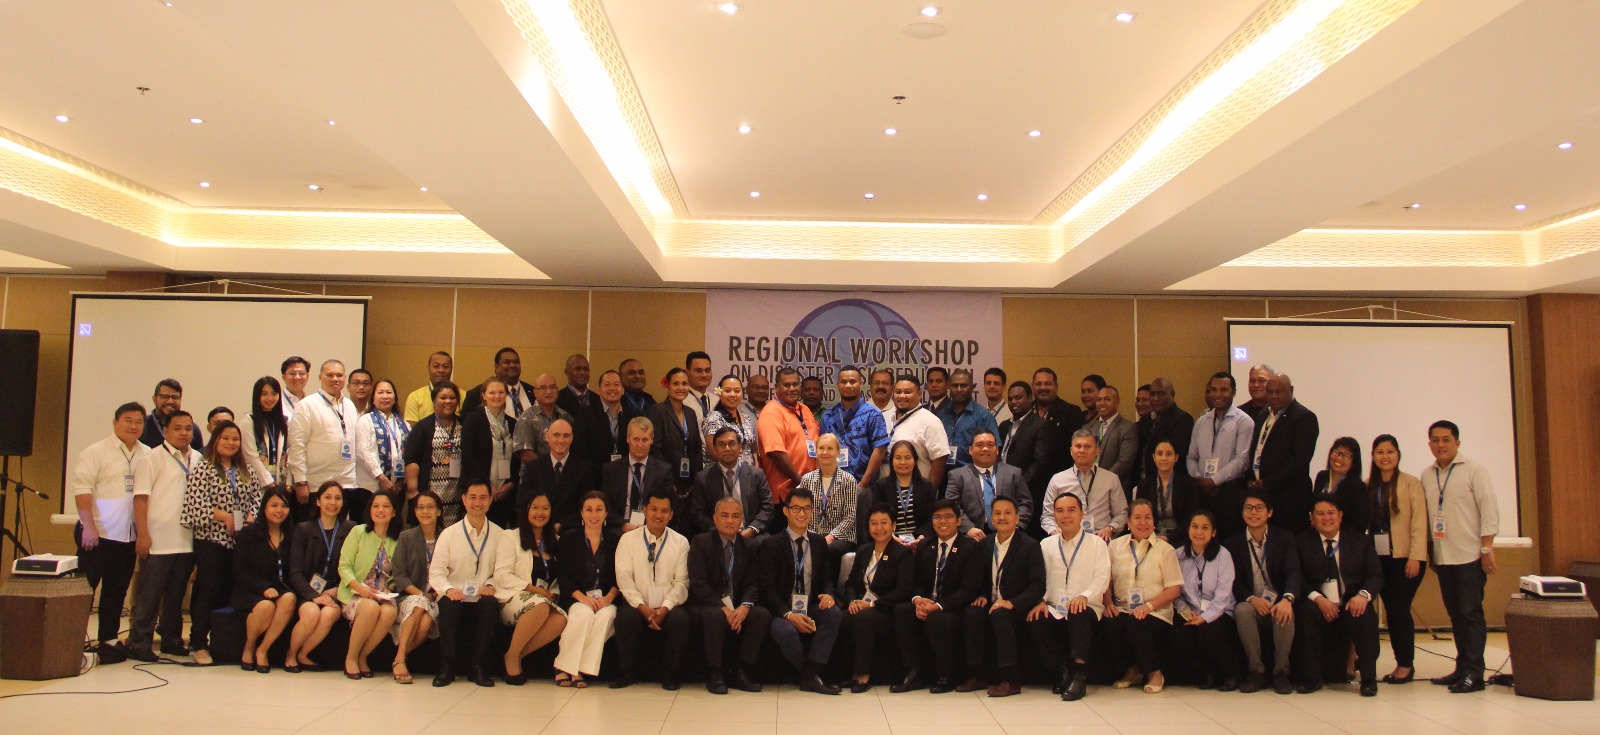 Regional Workshop On Disaster Risk Reduction, Preparedness And Disaster Displacement